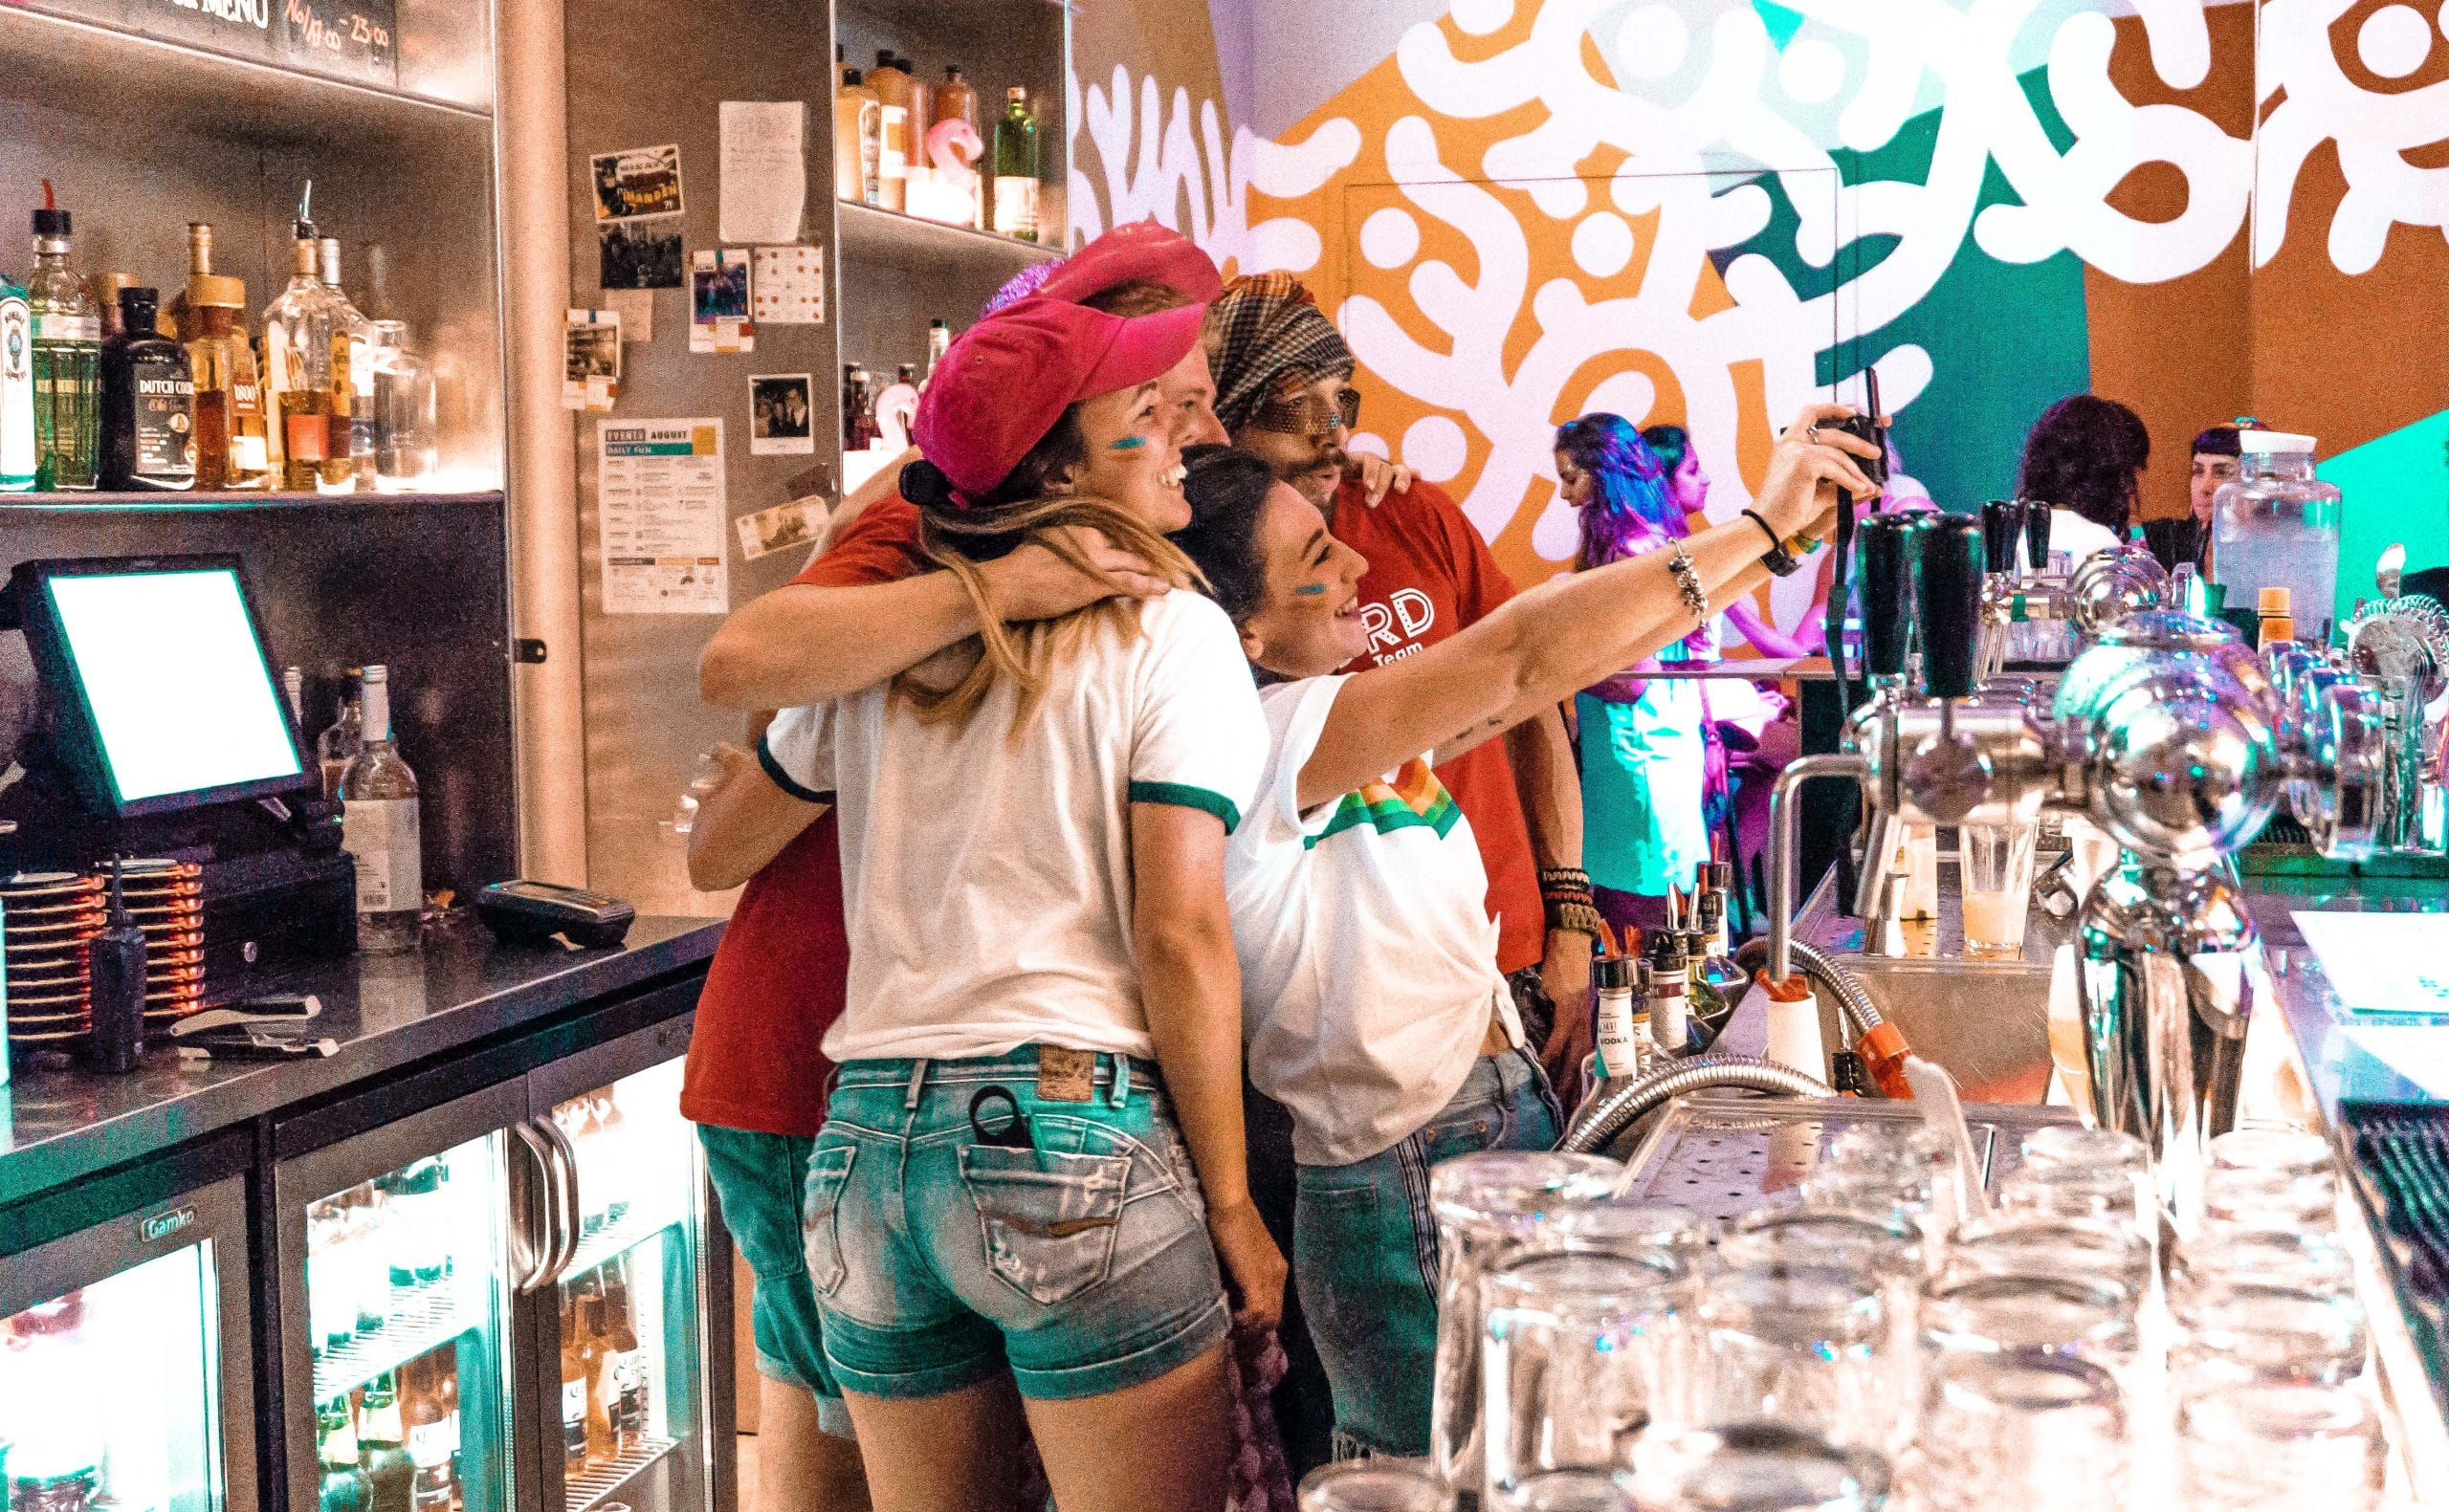 Clink Hostels | Top Things to do when social isolating | Clink Hostels